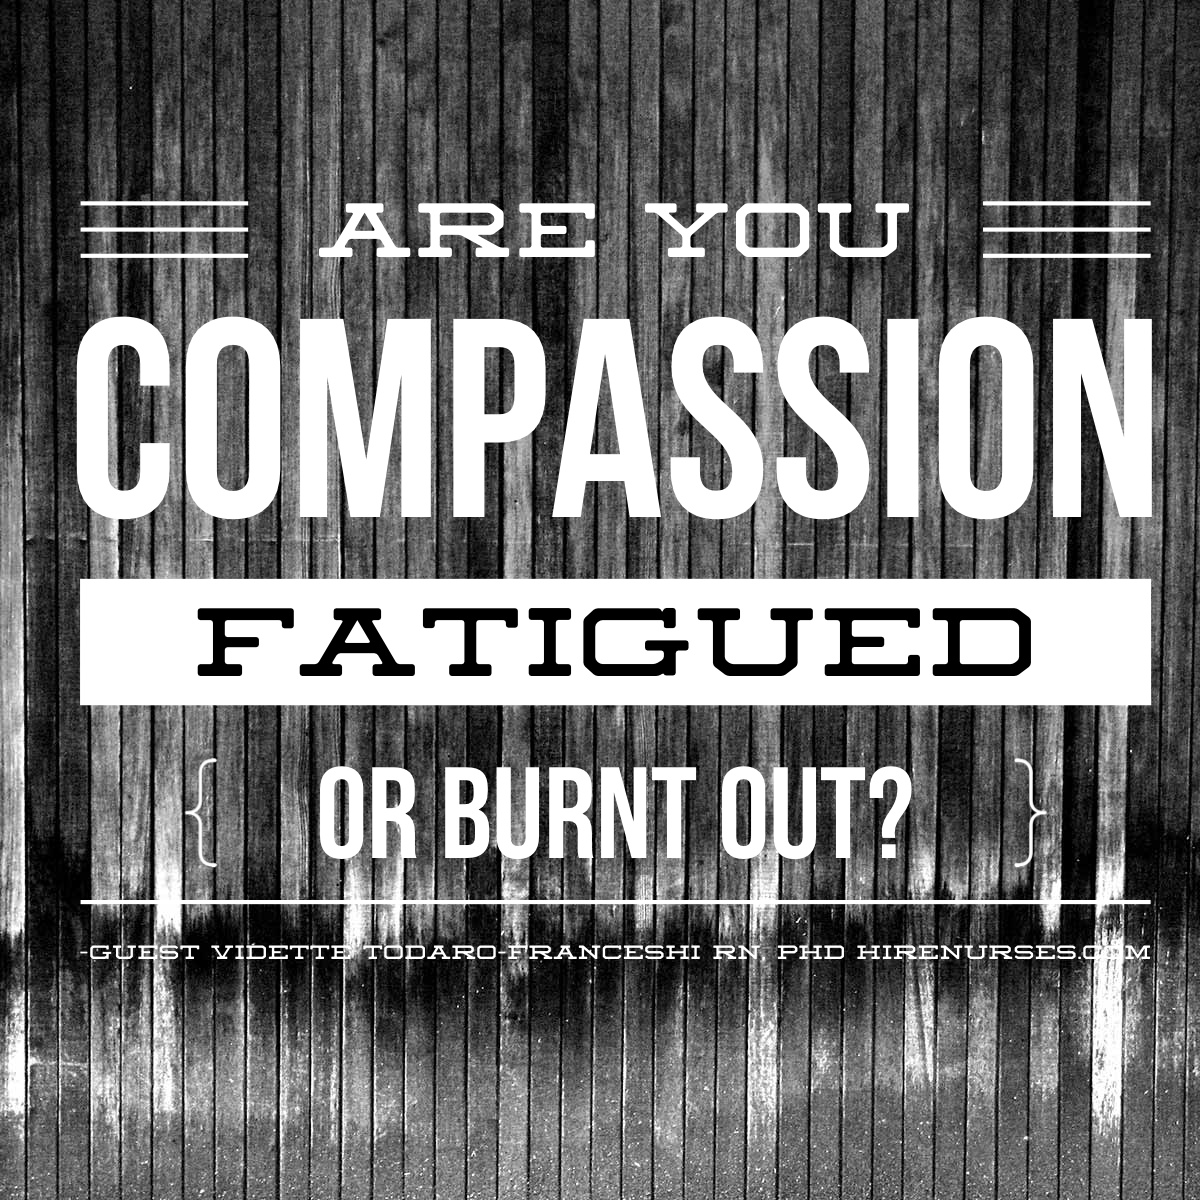 a commentary on compassion fatigue in Compassion fatigue according to figley, individuals with a higher capacity or responsibility to empathize with others may be at risk for compassion fatigue or stress, which is related to professionals and individuals who spend a significant amount of time responding to information related to suffering.